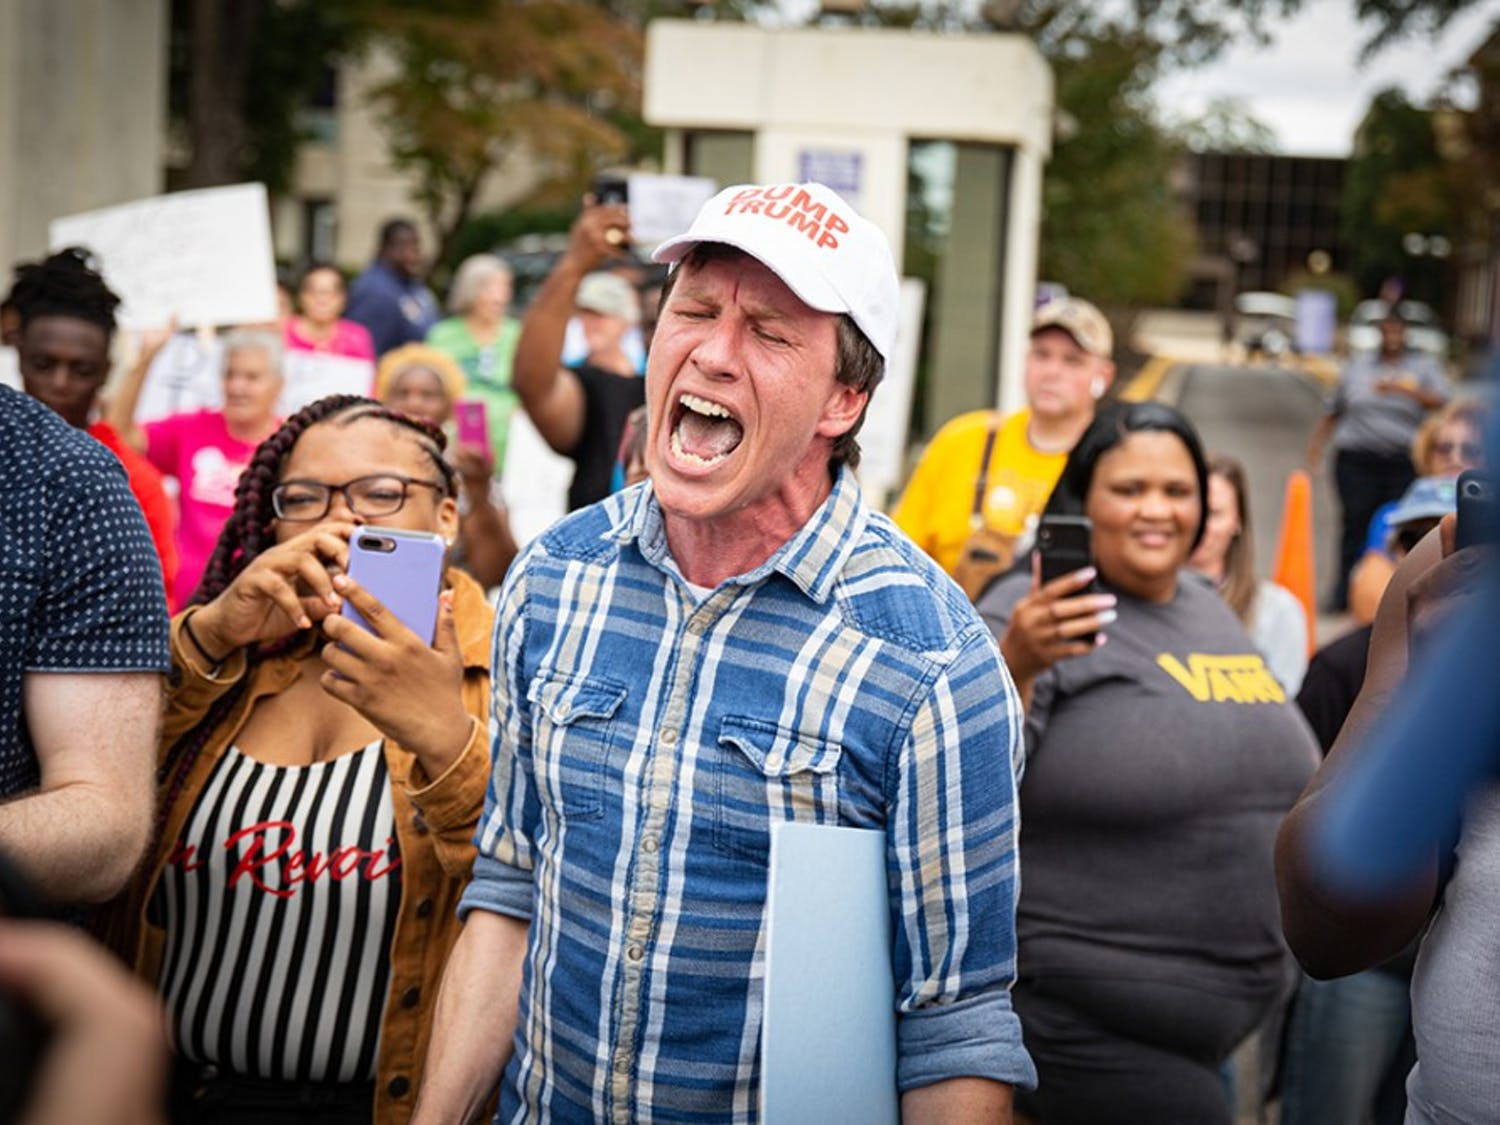 Protestor expresses his feelings to supporters at Benedict College Oct. 25.